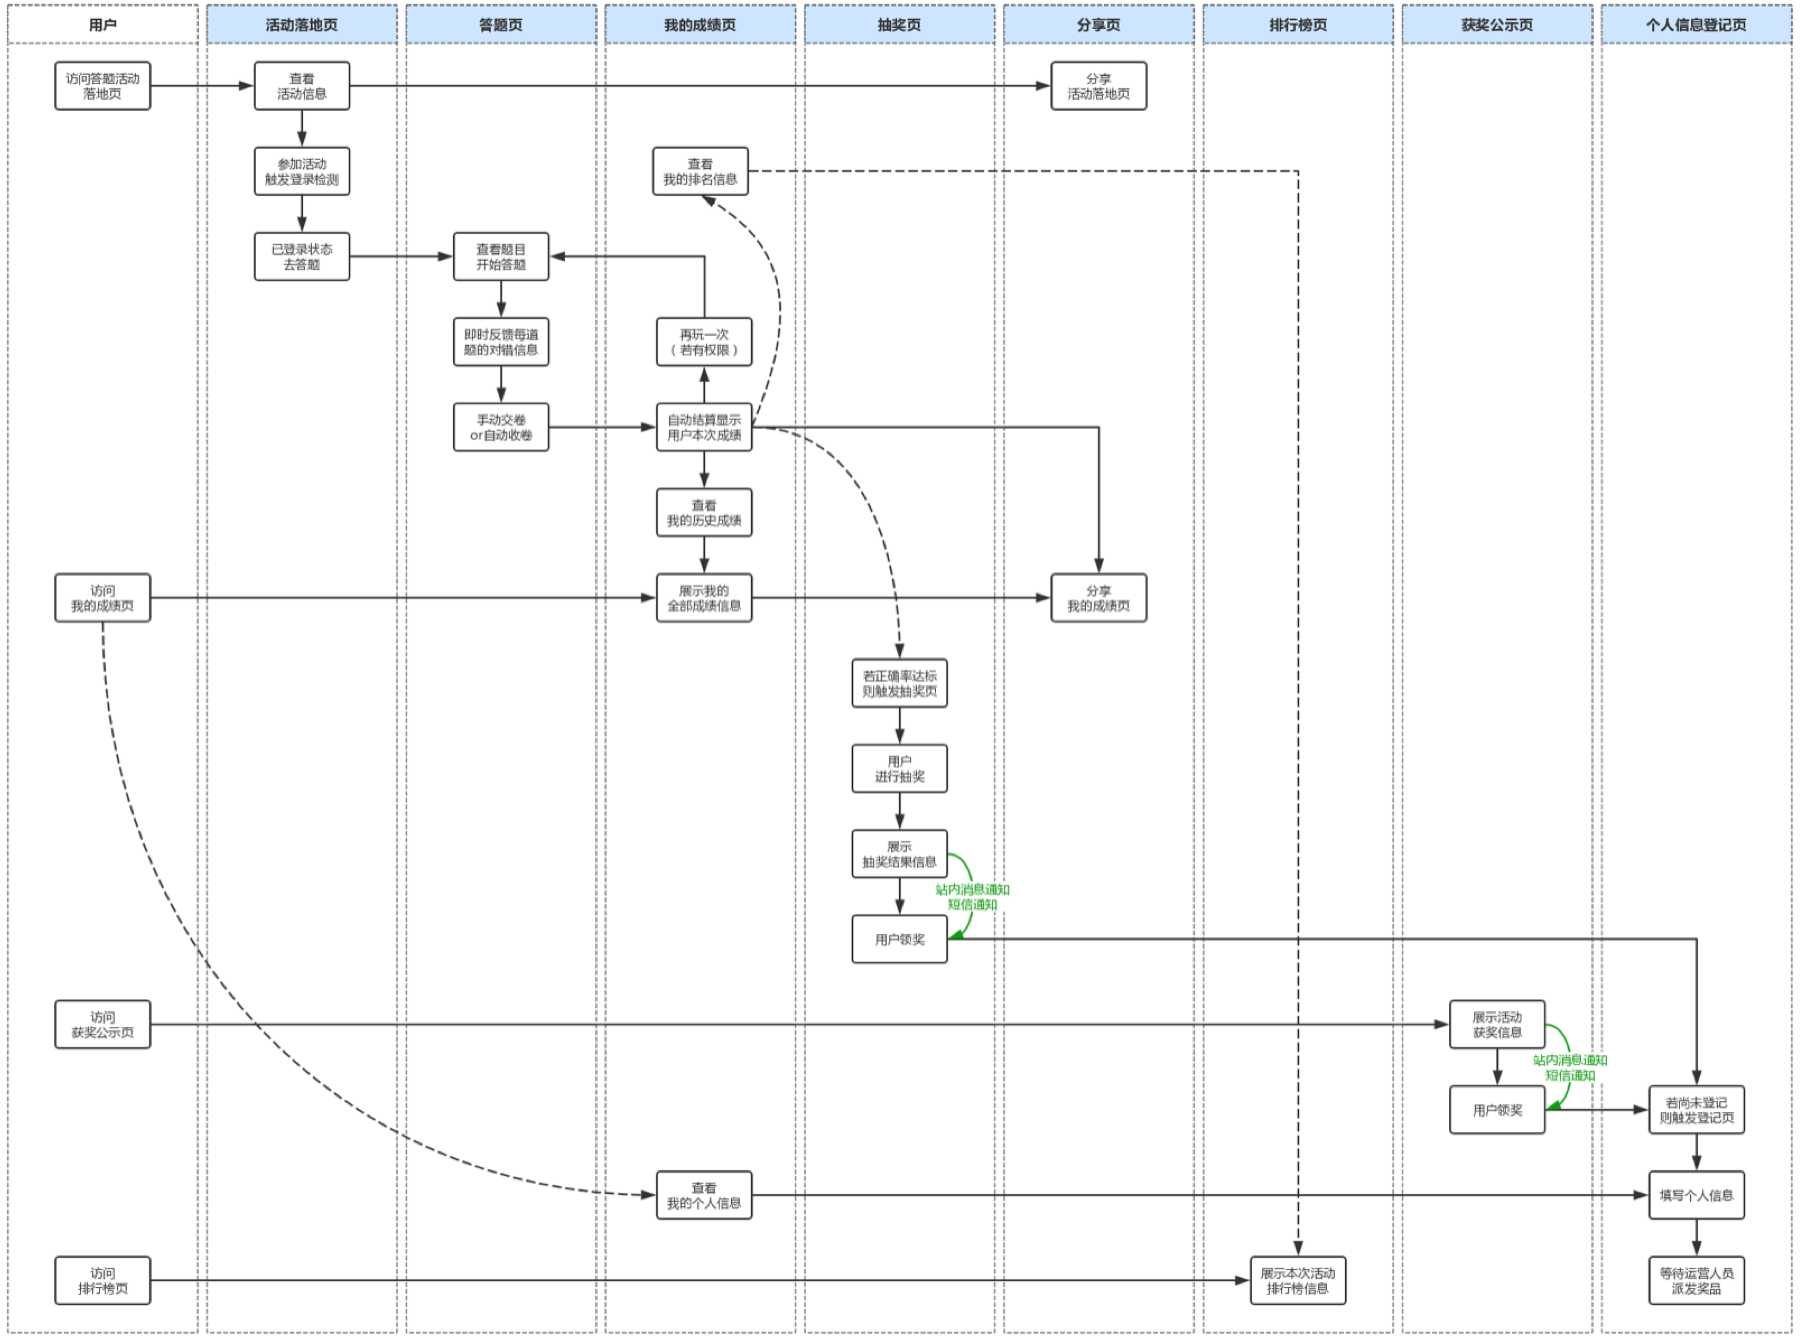 Figure 8: The user flow of the Trivia Game Event.